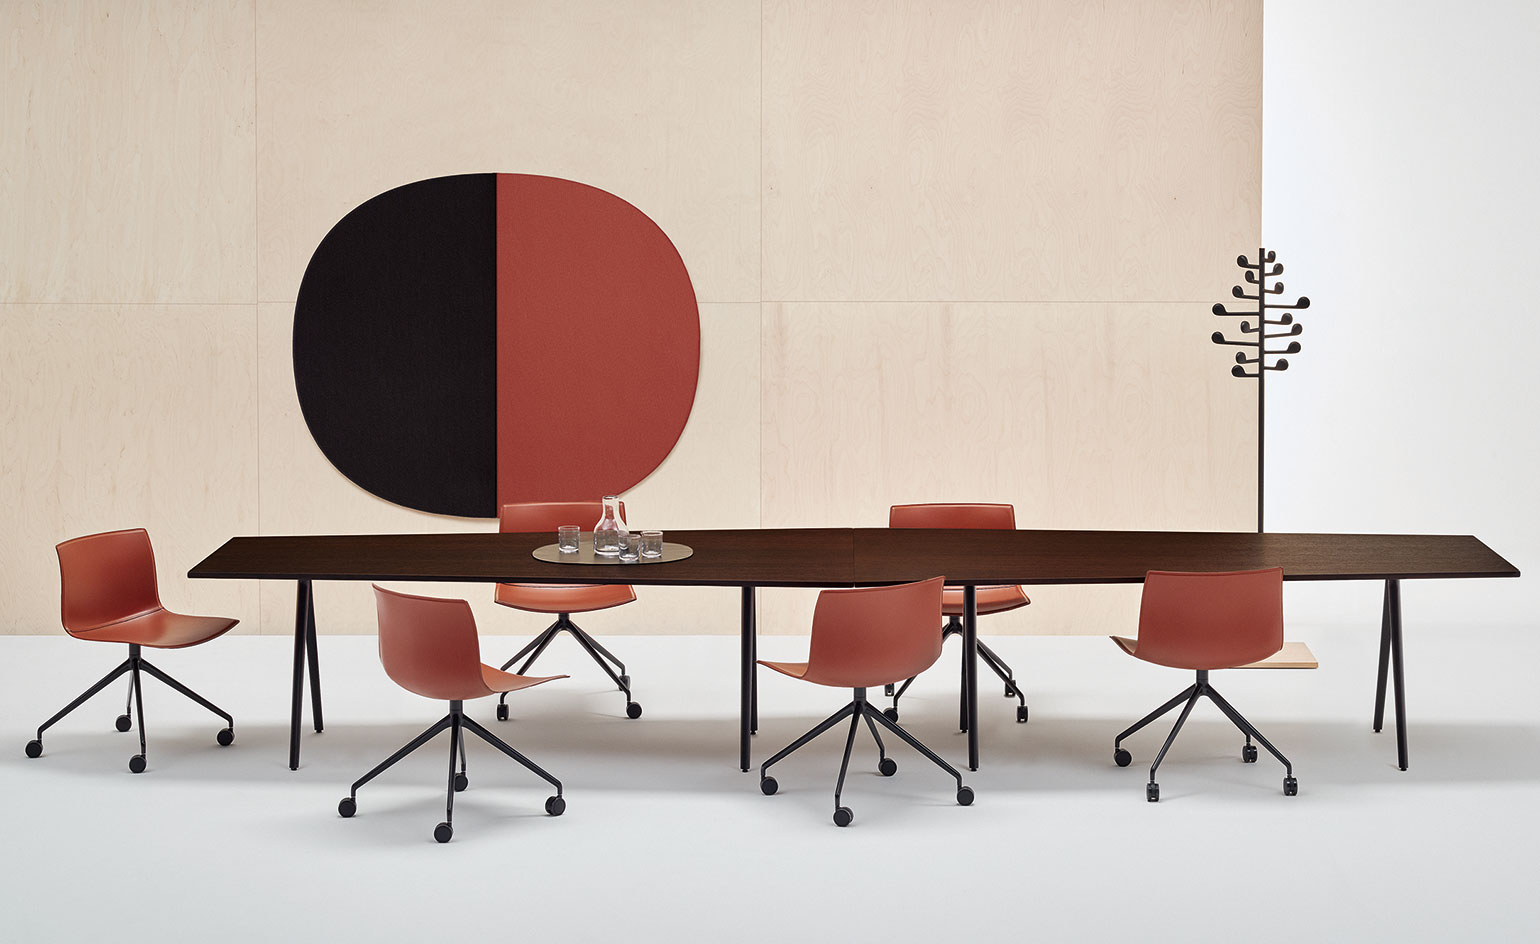 Stand Out Designs : Neocon s standout designs wallpaper